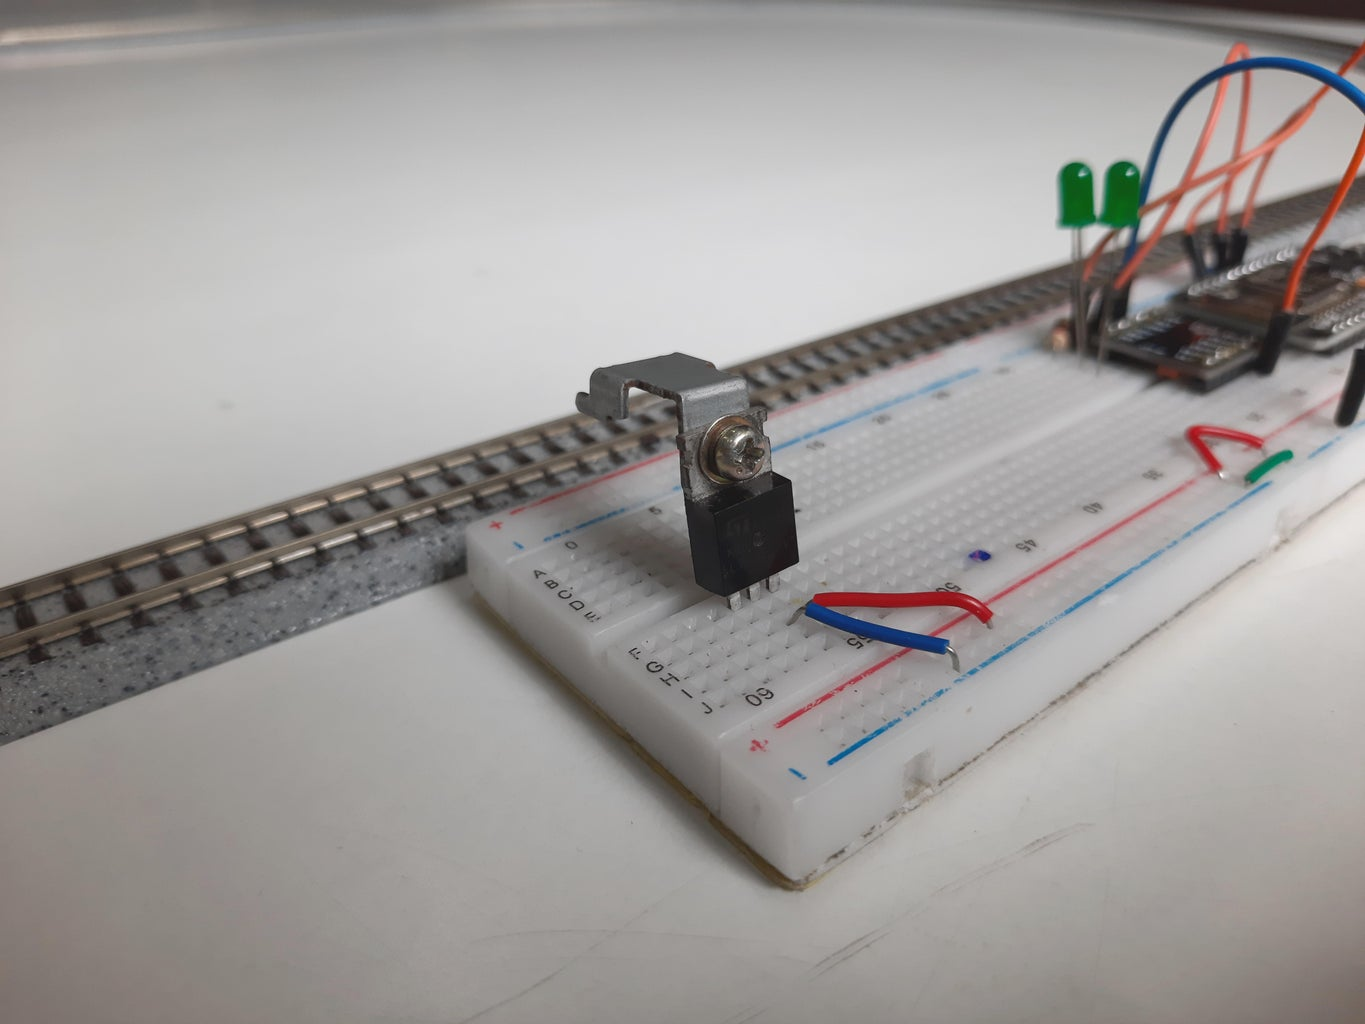 Connect the Voltage Regulator to the Setup